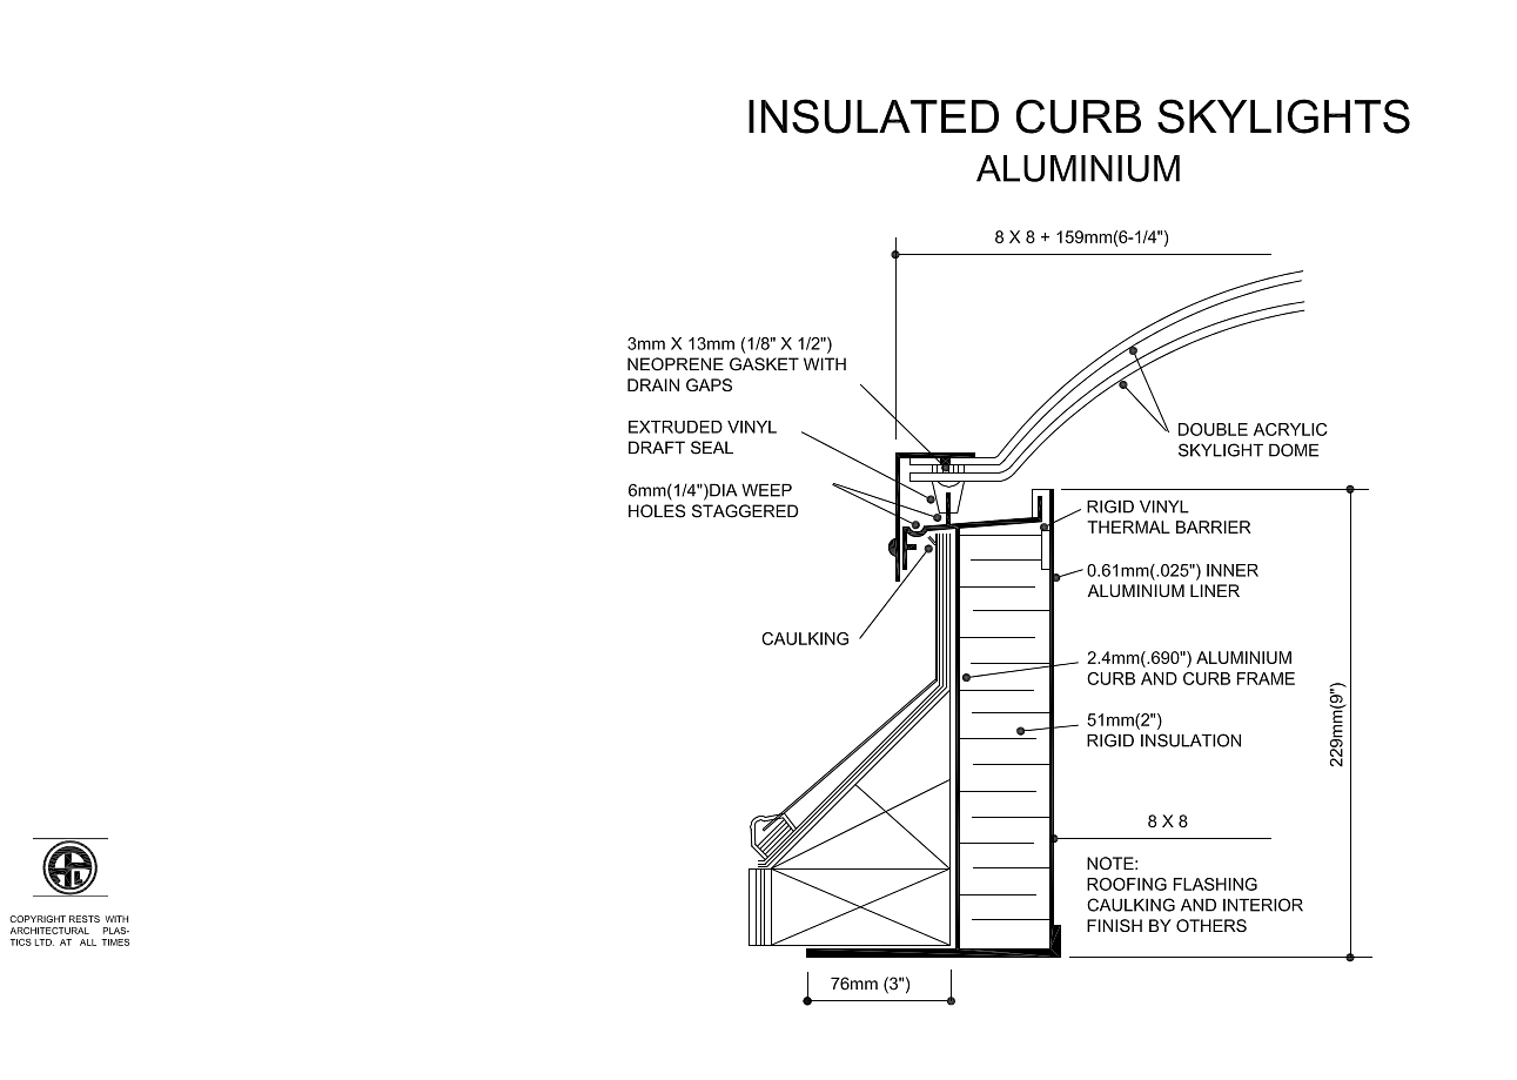 Insulated Curb Skylights Aluminum Diagram